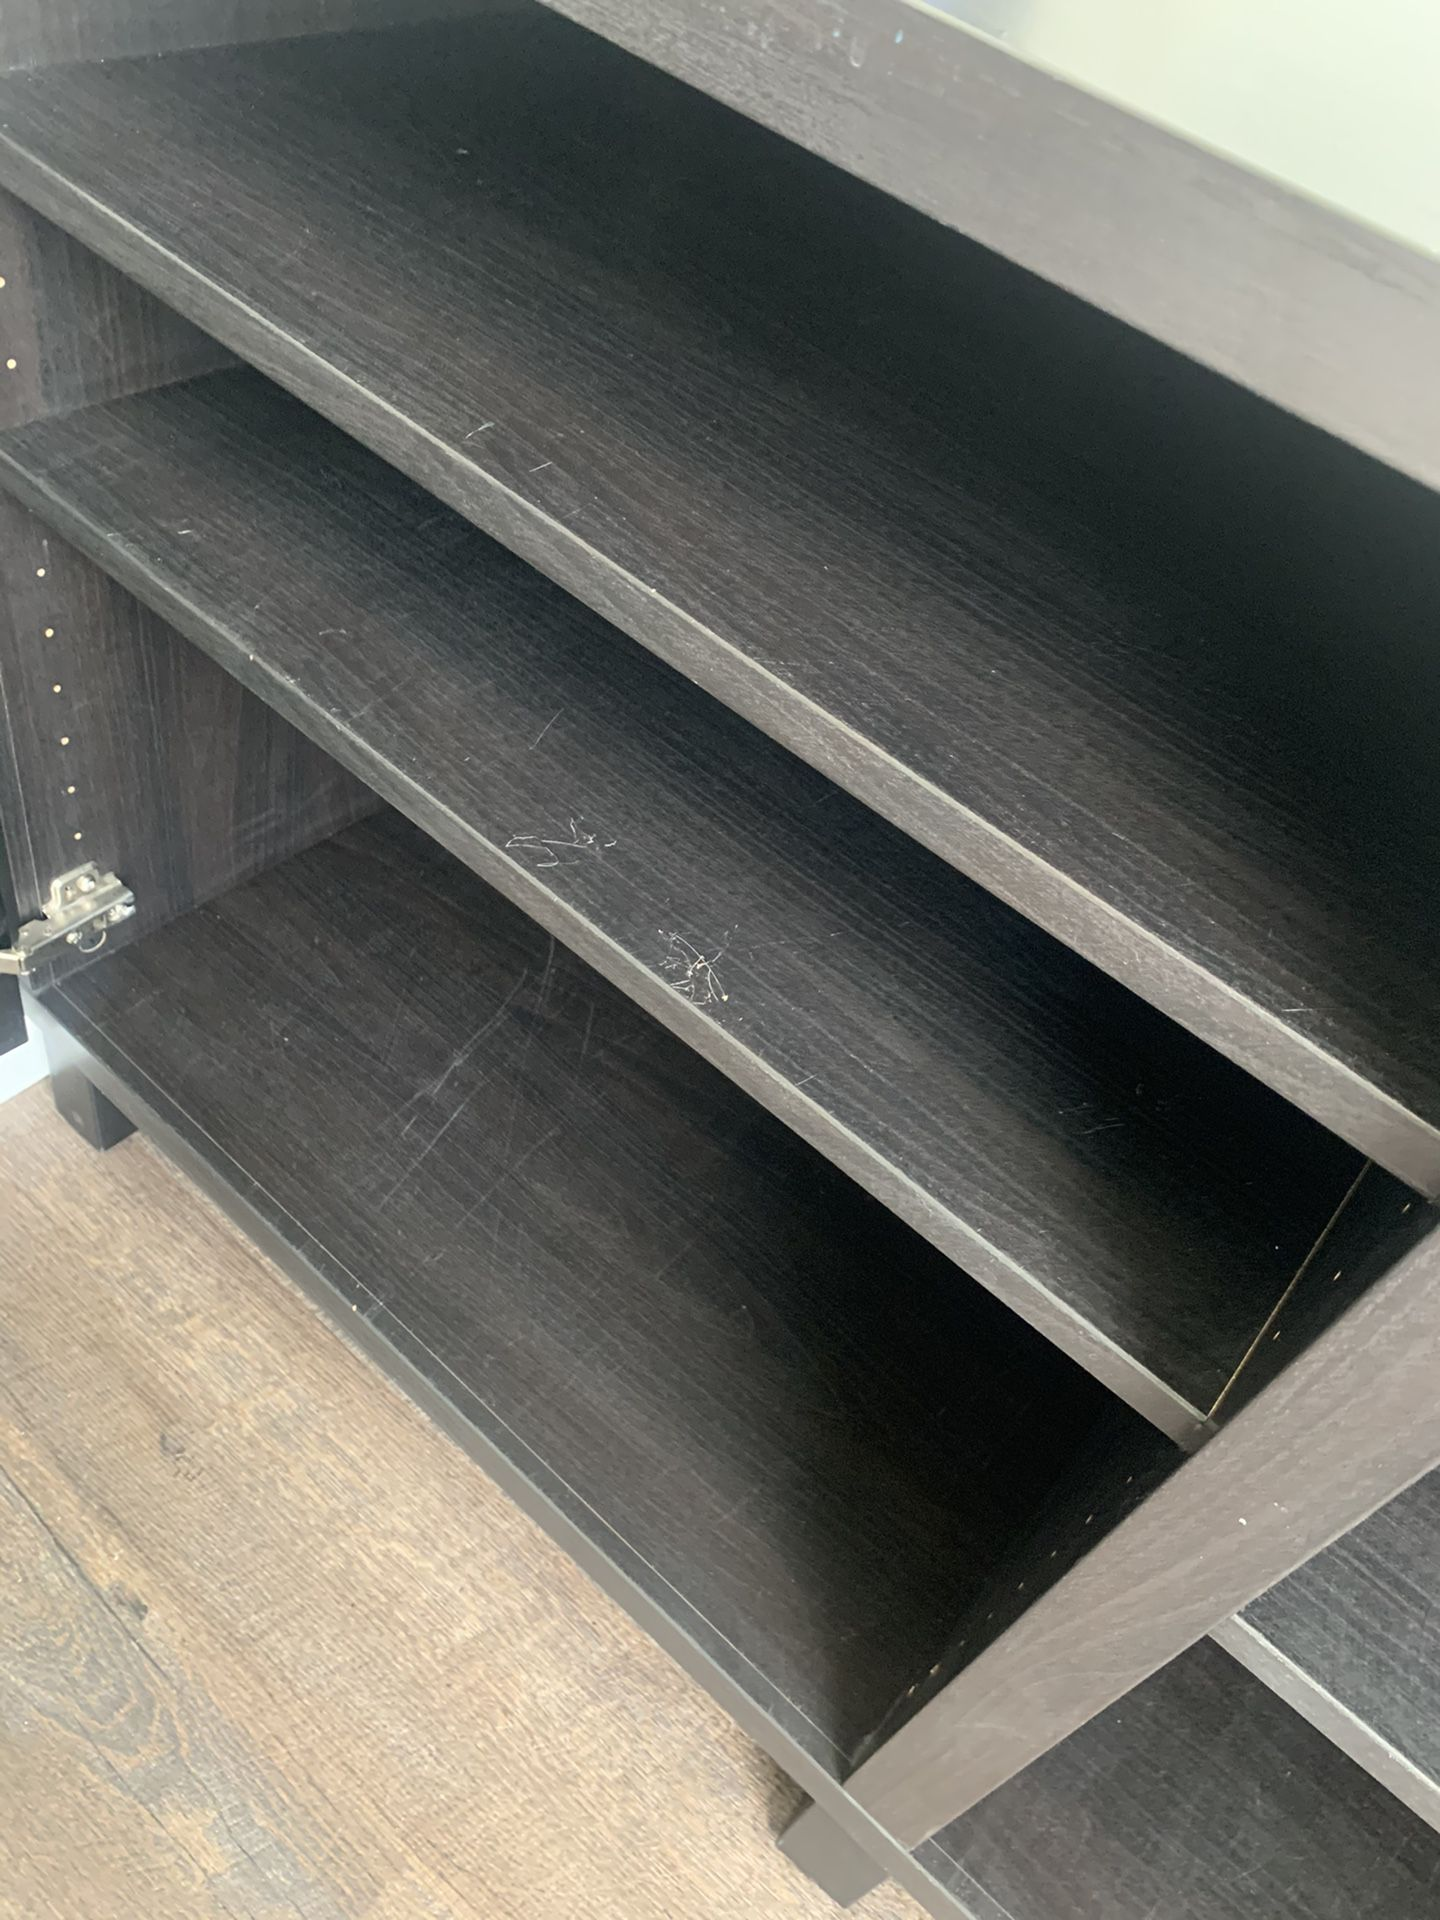 IKEA Black Media Console Cabinet with Adjustable Shelves